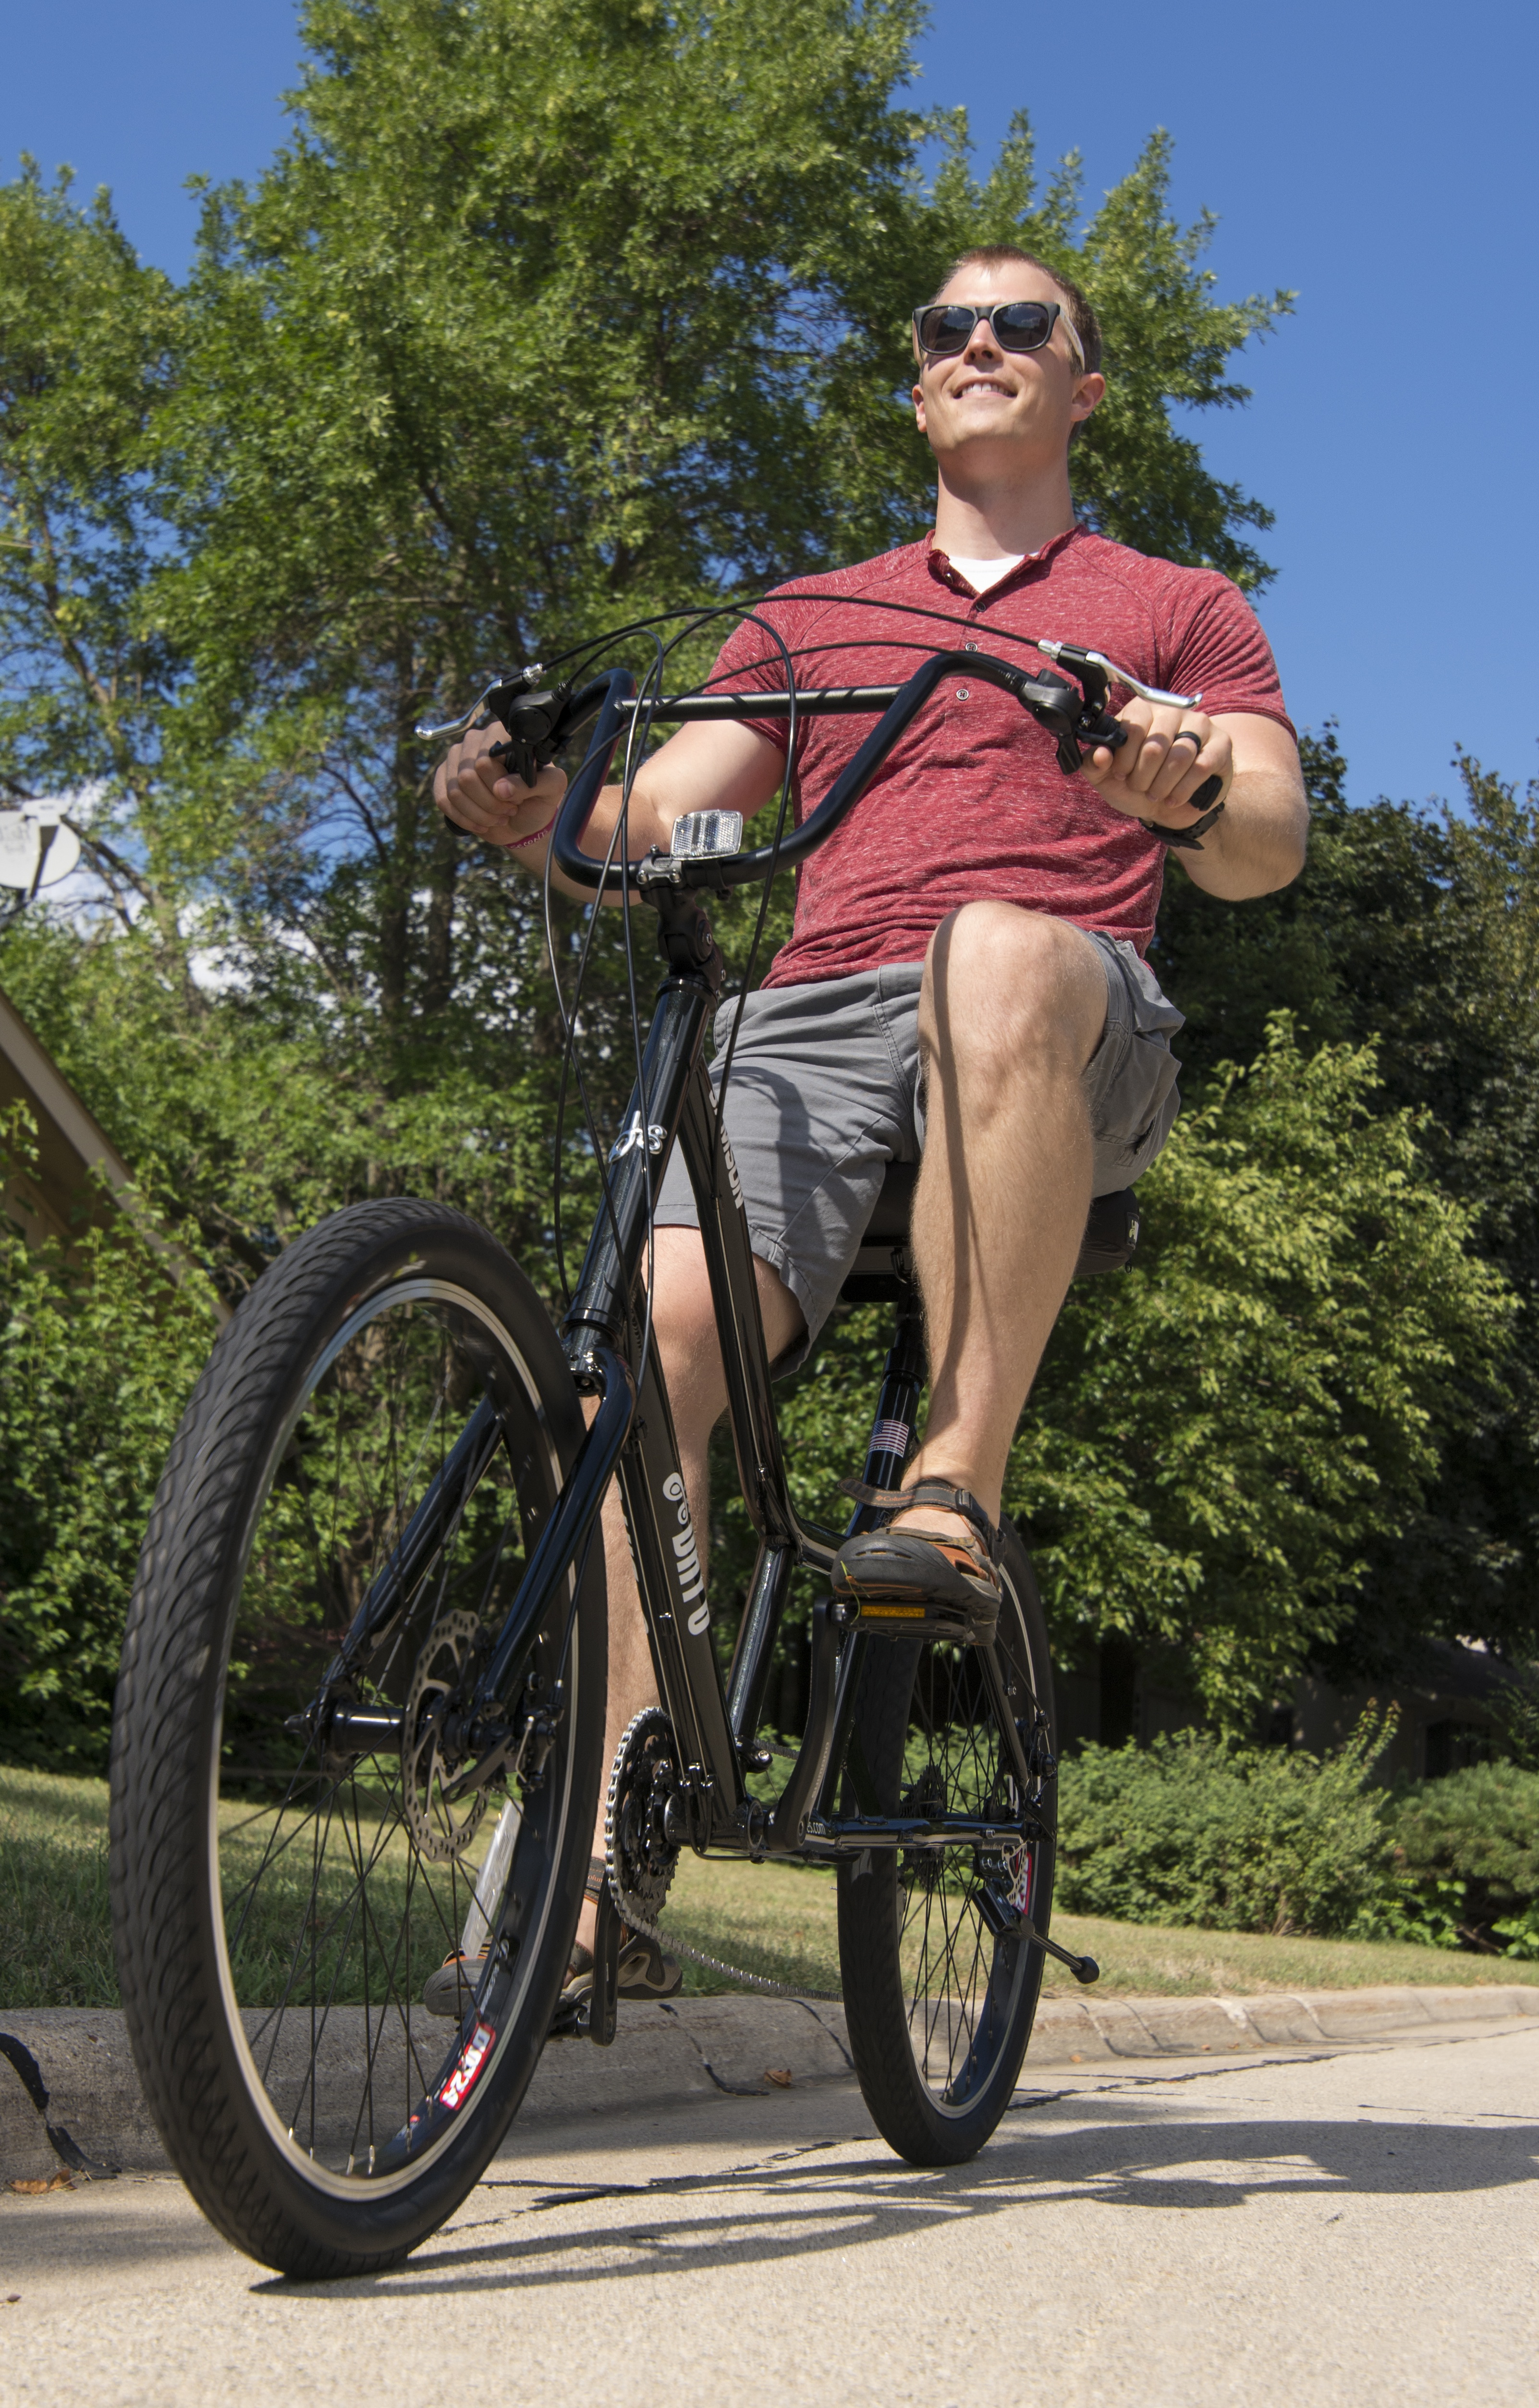 Day 6 Bicycles are the most comfortable semi-recumbent crank forward bikes available